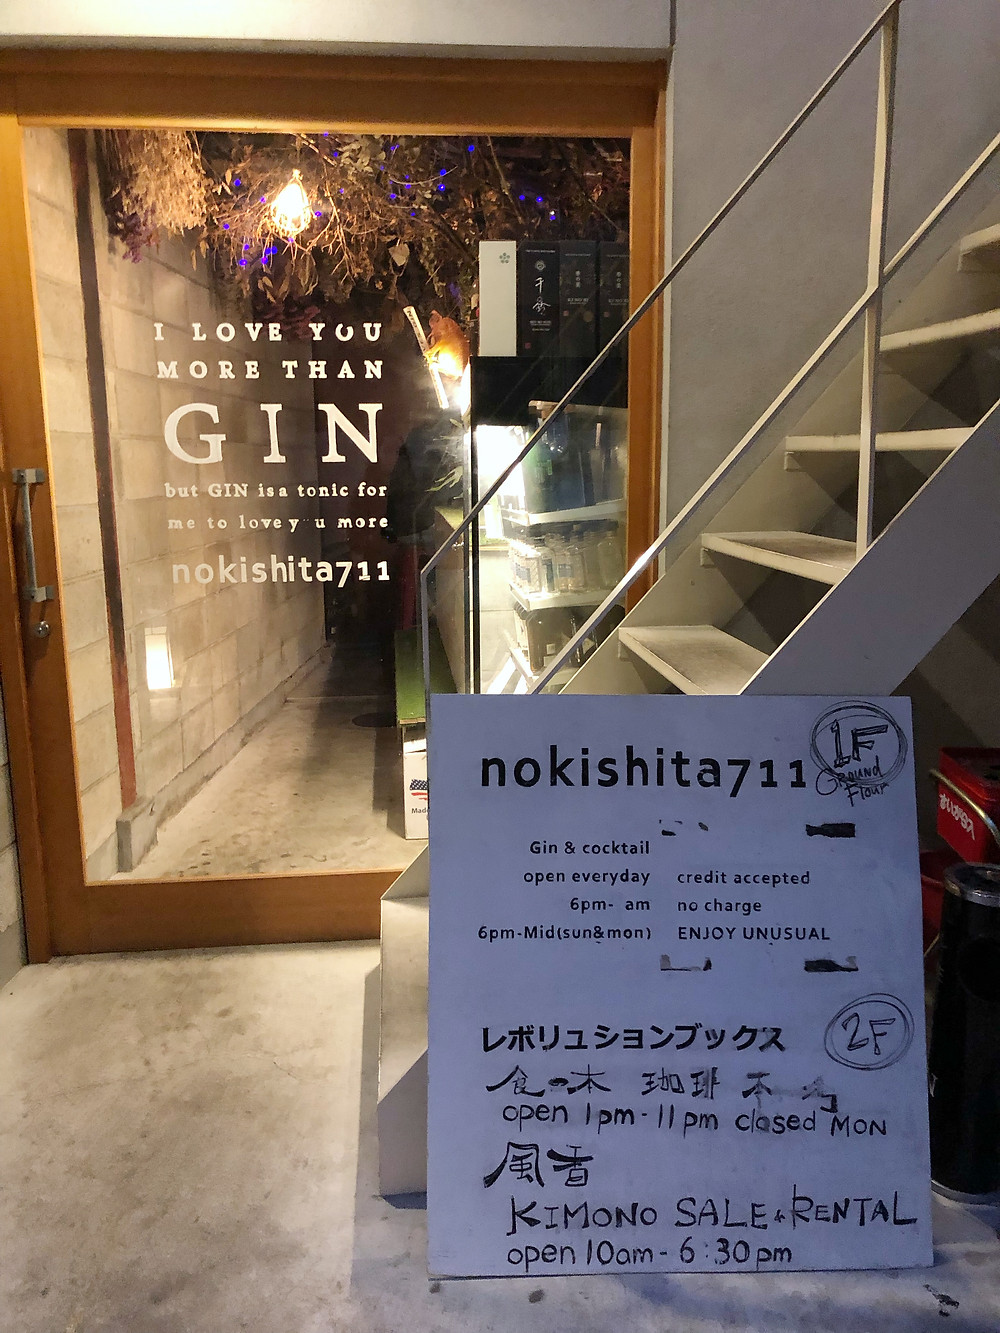 Nokishita711 gin and cocktail labo kyoto Cookingwiththehamster